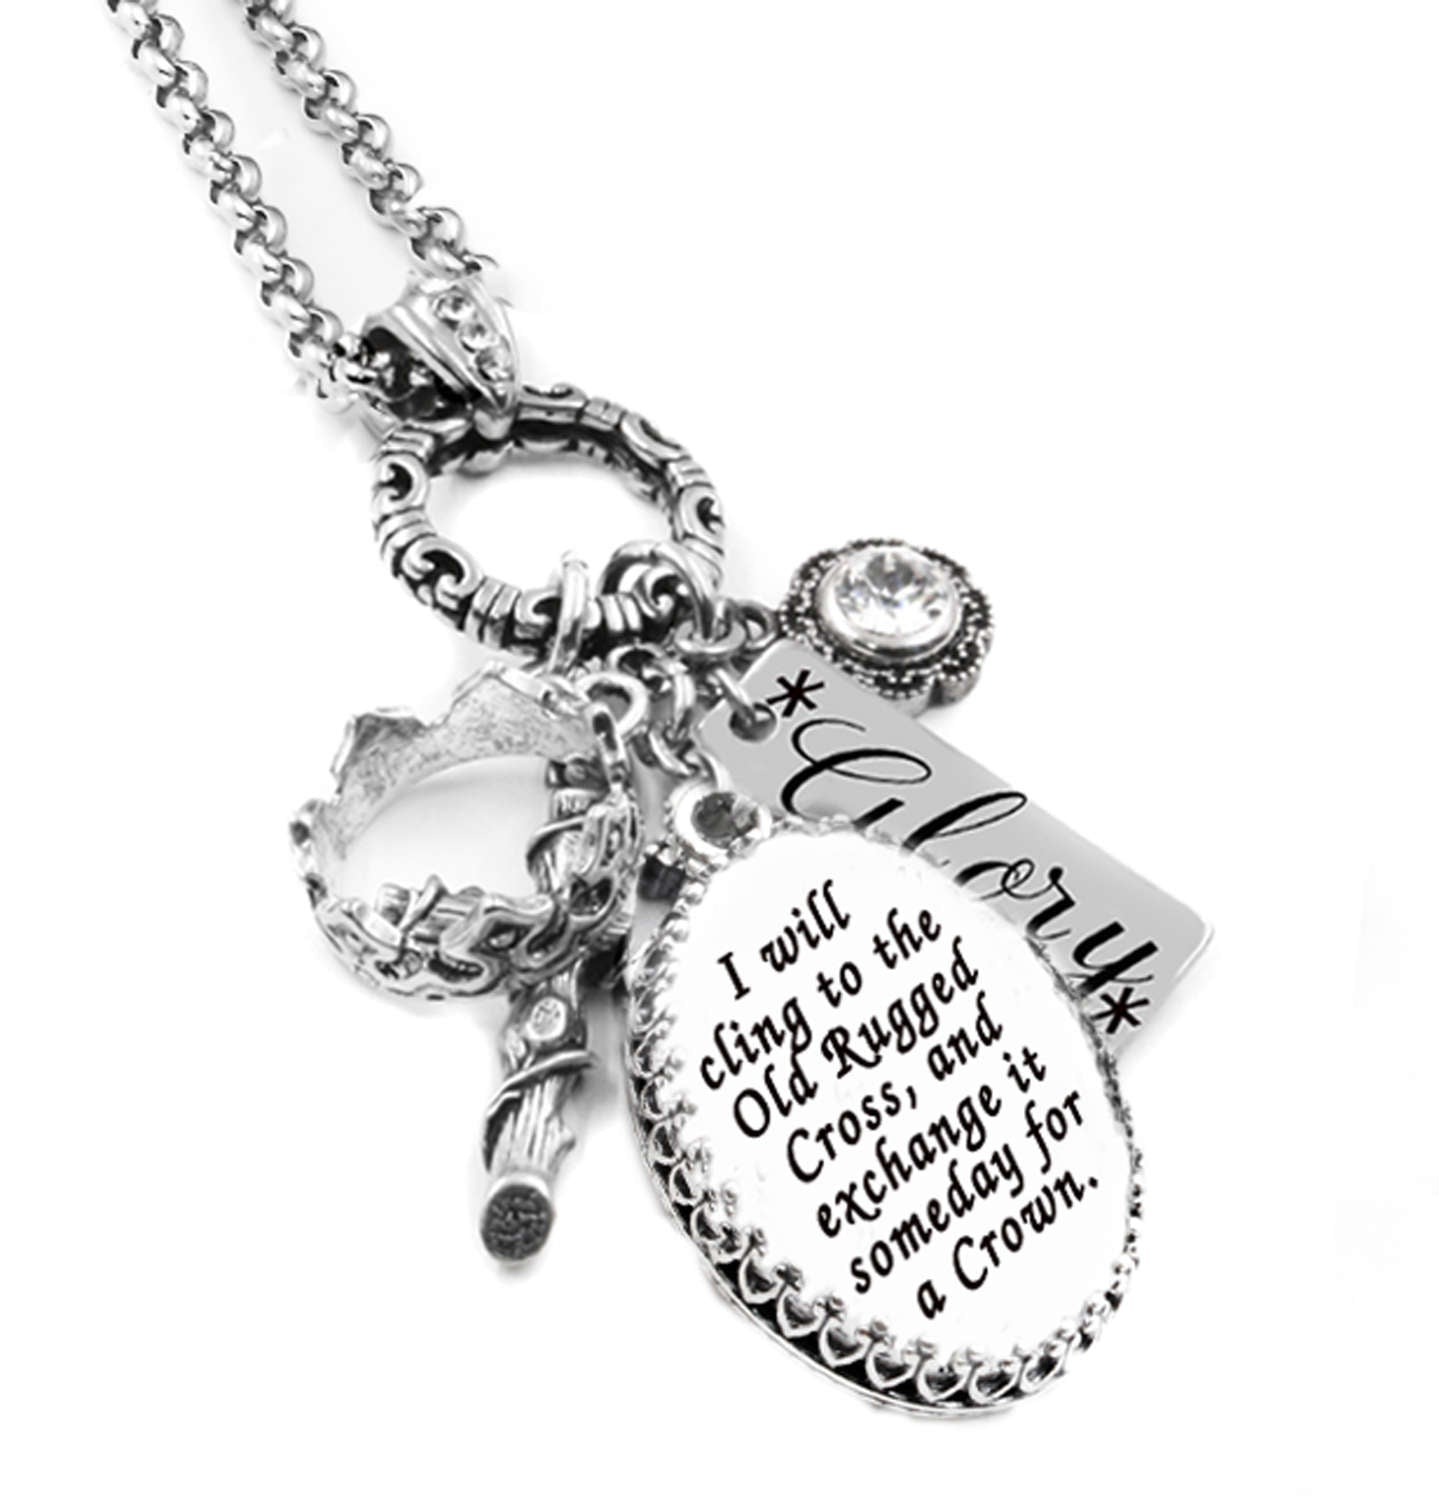 Old Rugged Cross Charm Necklace Christian Faith Hope Love